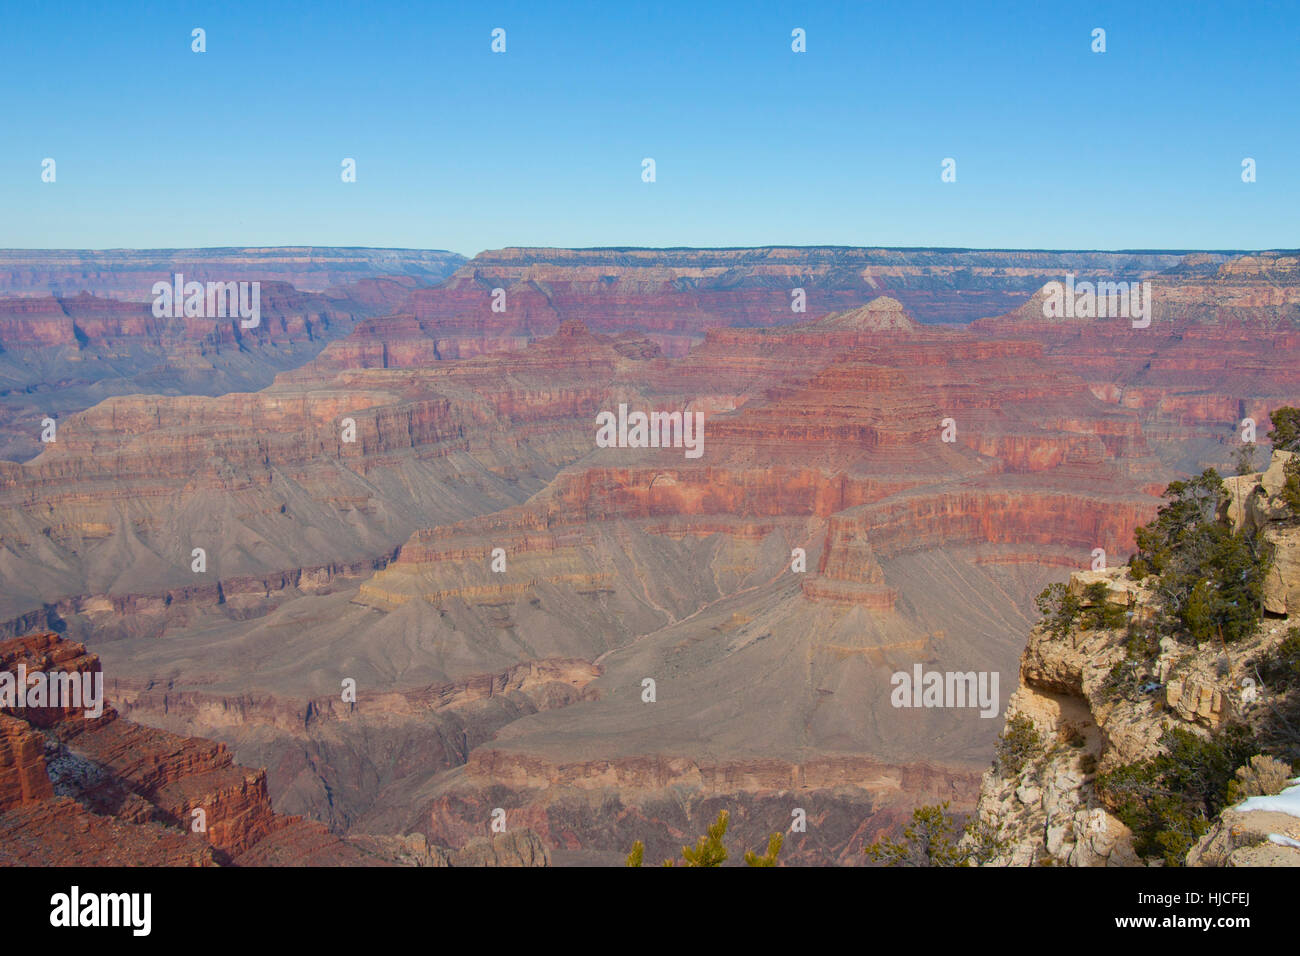 South Rim, Grand Canyon National Park, UNESCO World Heritage Site, Arizona, USA - Stock Image